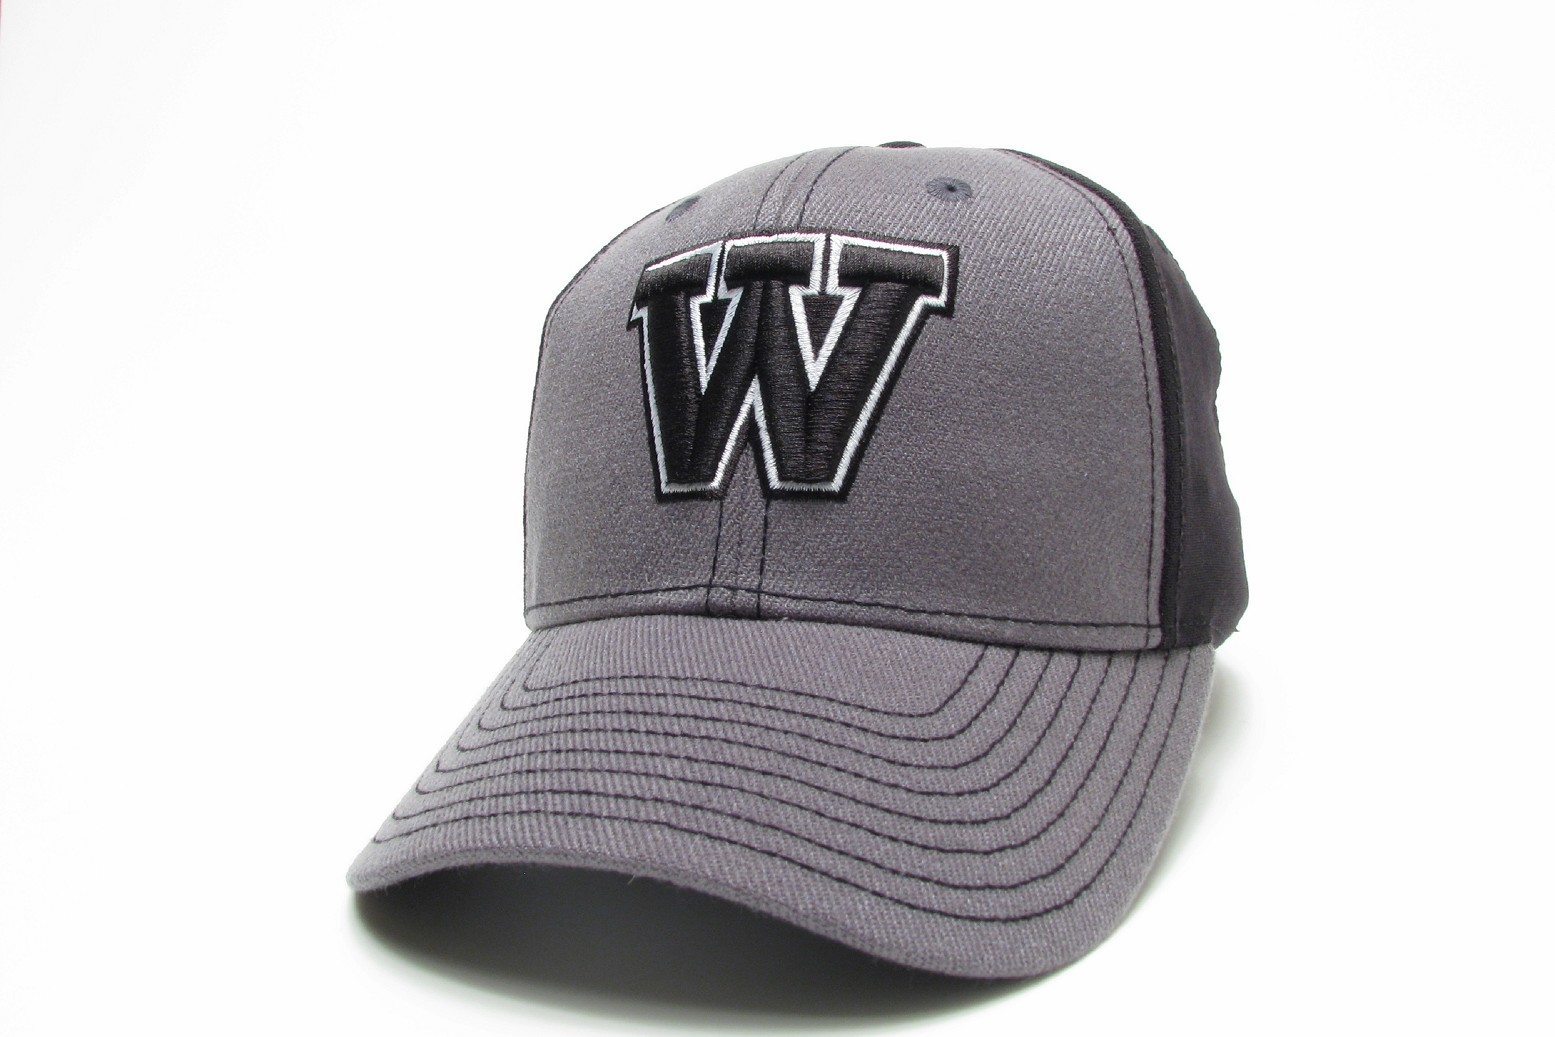 Image for the Legacy Grey and Black 'W' Hat product